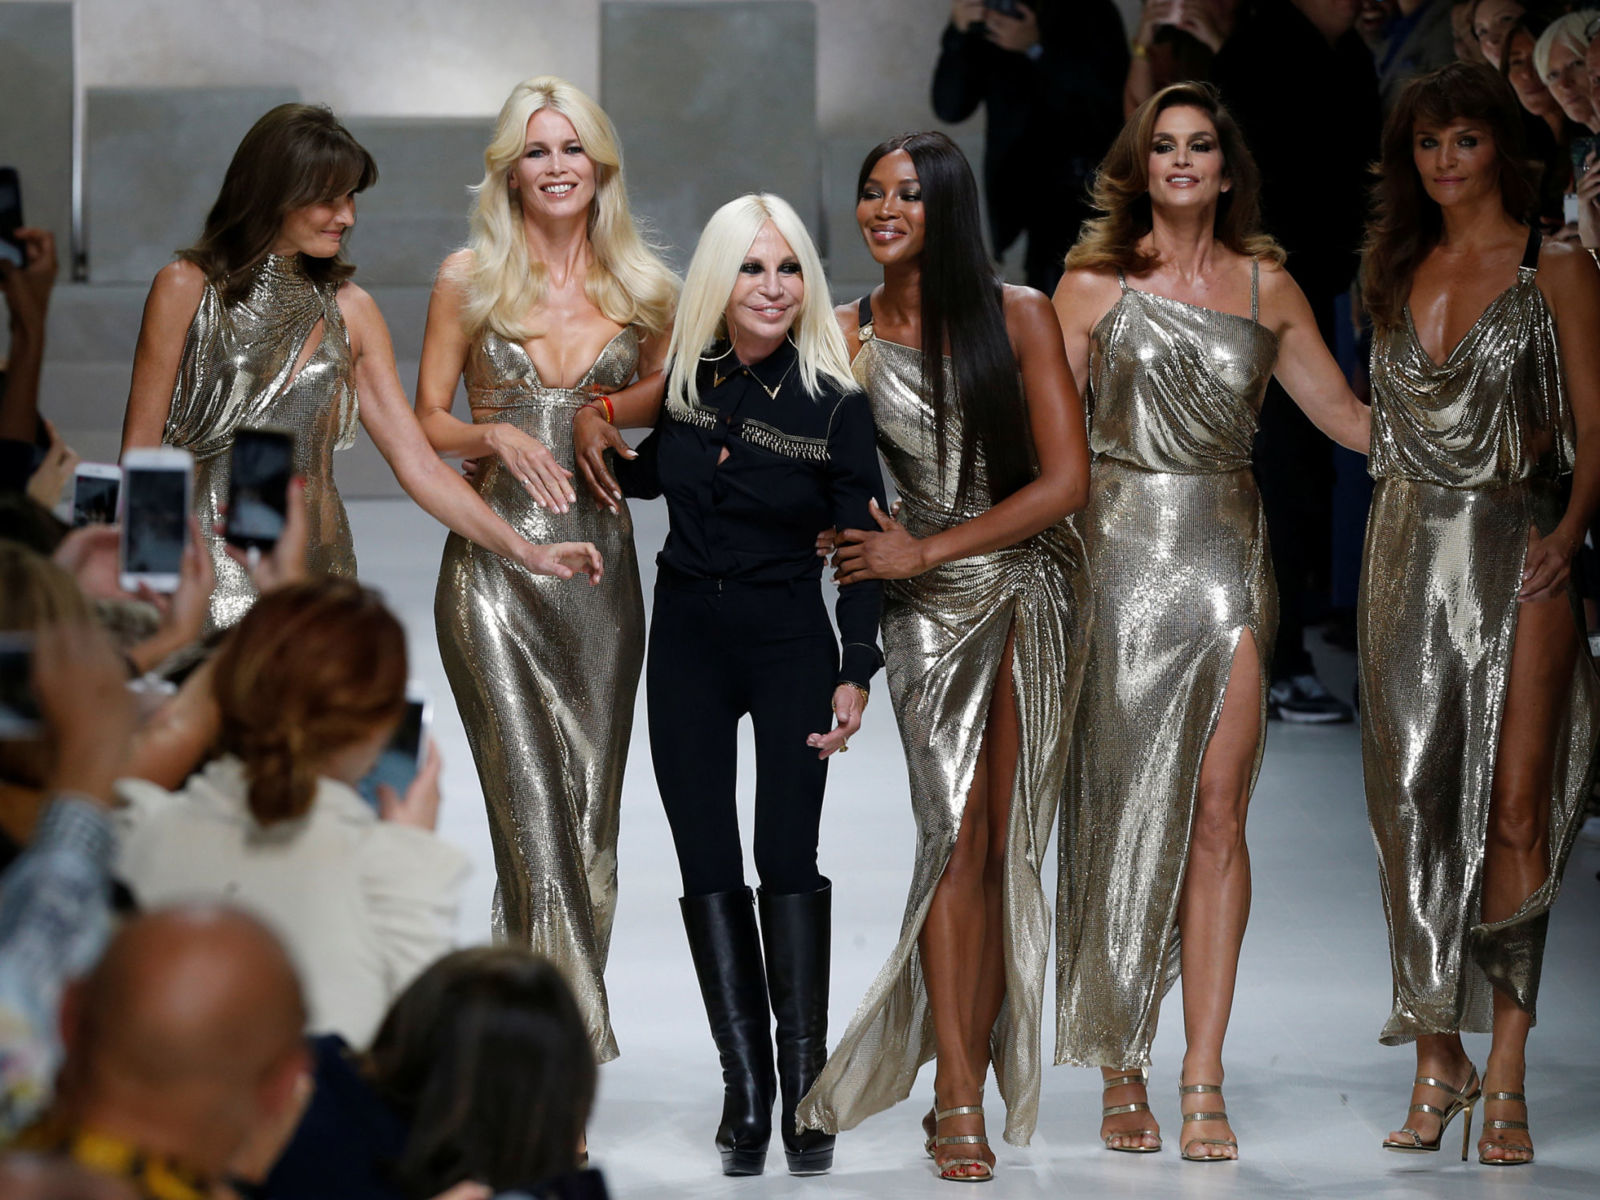 Italian designer Donatella Versace (3L) acknowledges the applause with former top models Carla Bruni (L), Claudia Schiffer, Naomi Campbell, Cindy Crawford and Helena Christensen (R) at the end of Versace Spring/Summer 2018 show at the Milan Fashion Week in Milan, Italy, September 22, 2017. REUTERS/Stefano Rellandini - RC14D32932B0